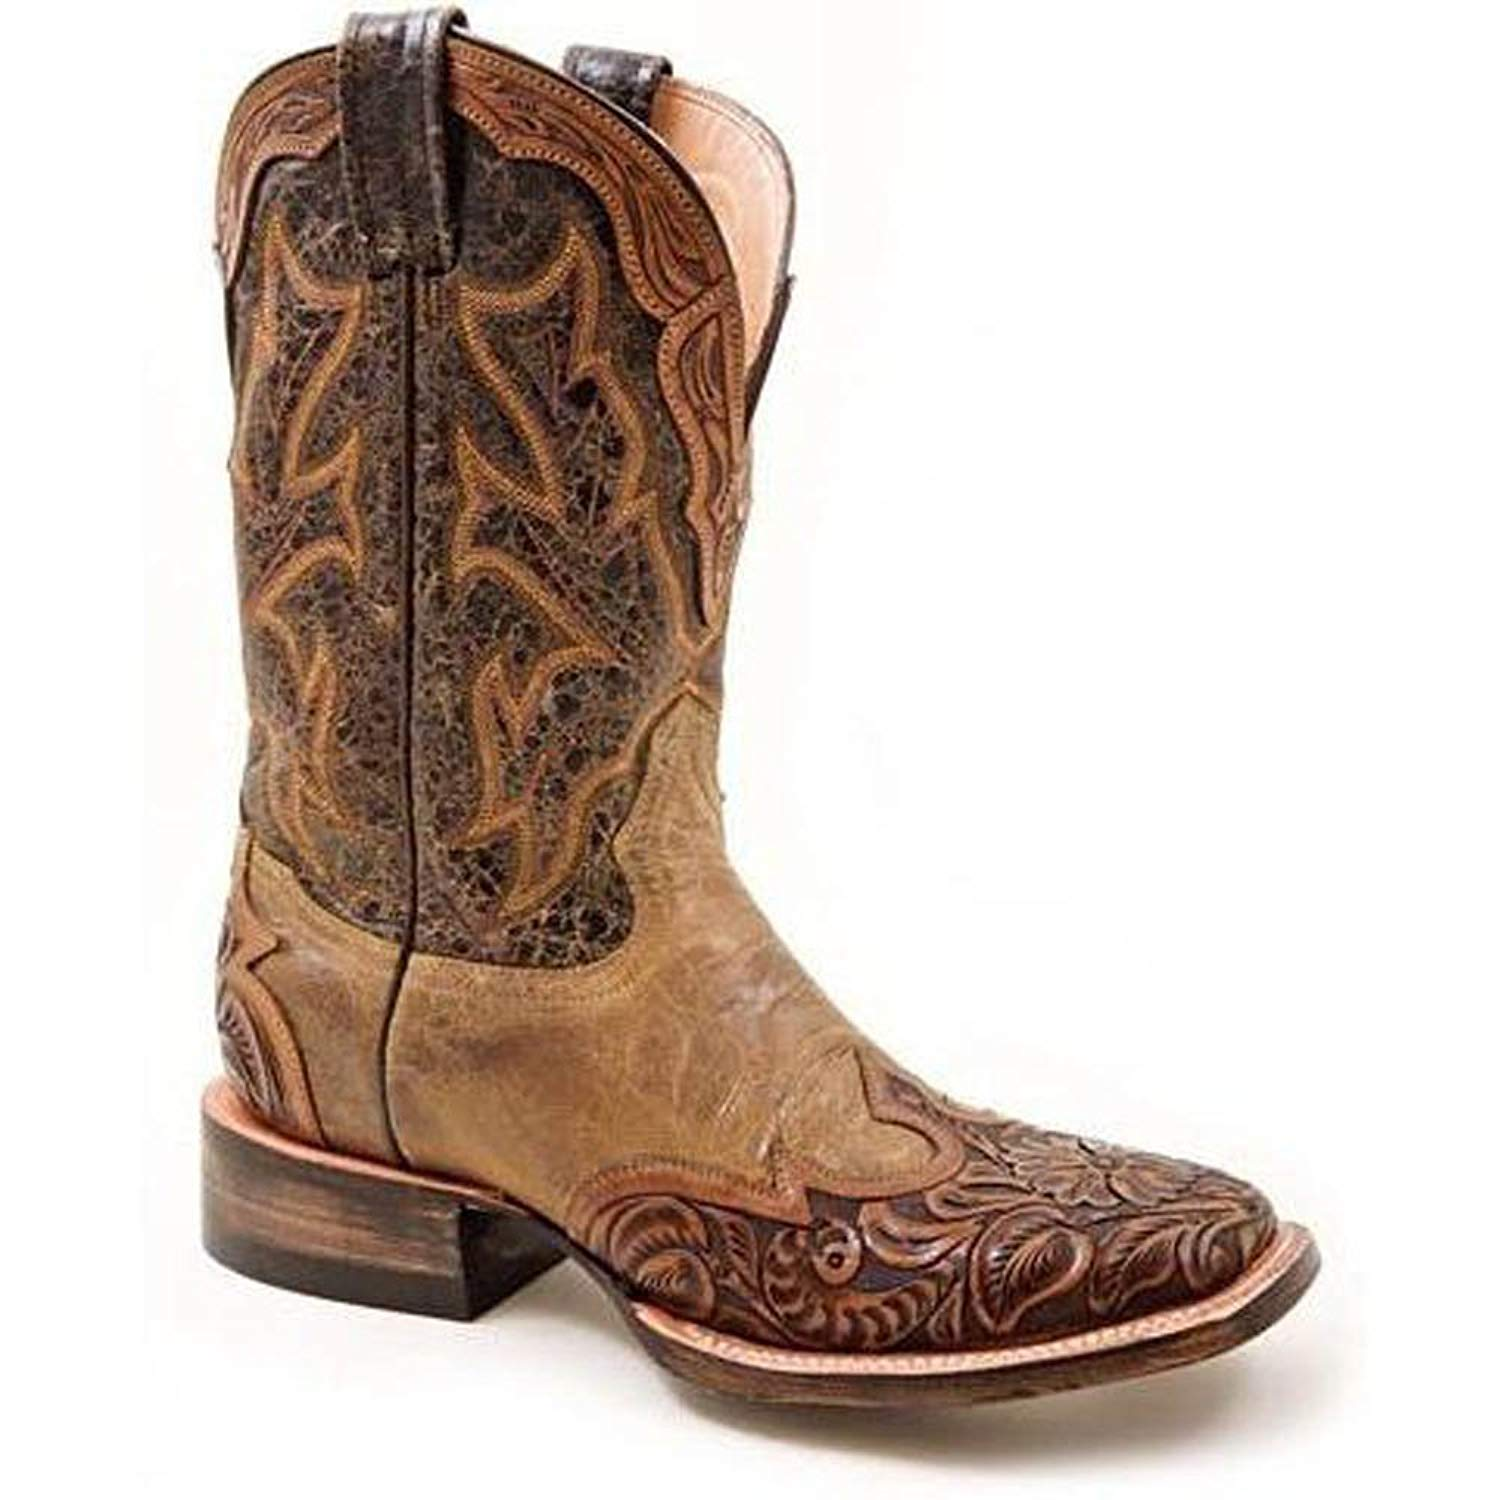 95966c0a8fb Cheap Hand Tooled Boots, find Hand Tooled Boots deals on line at ...